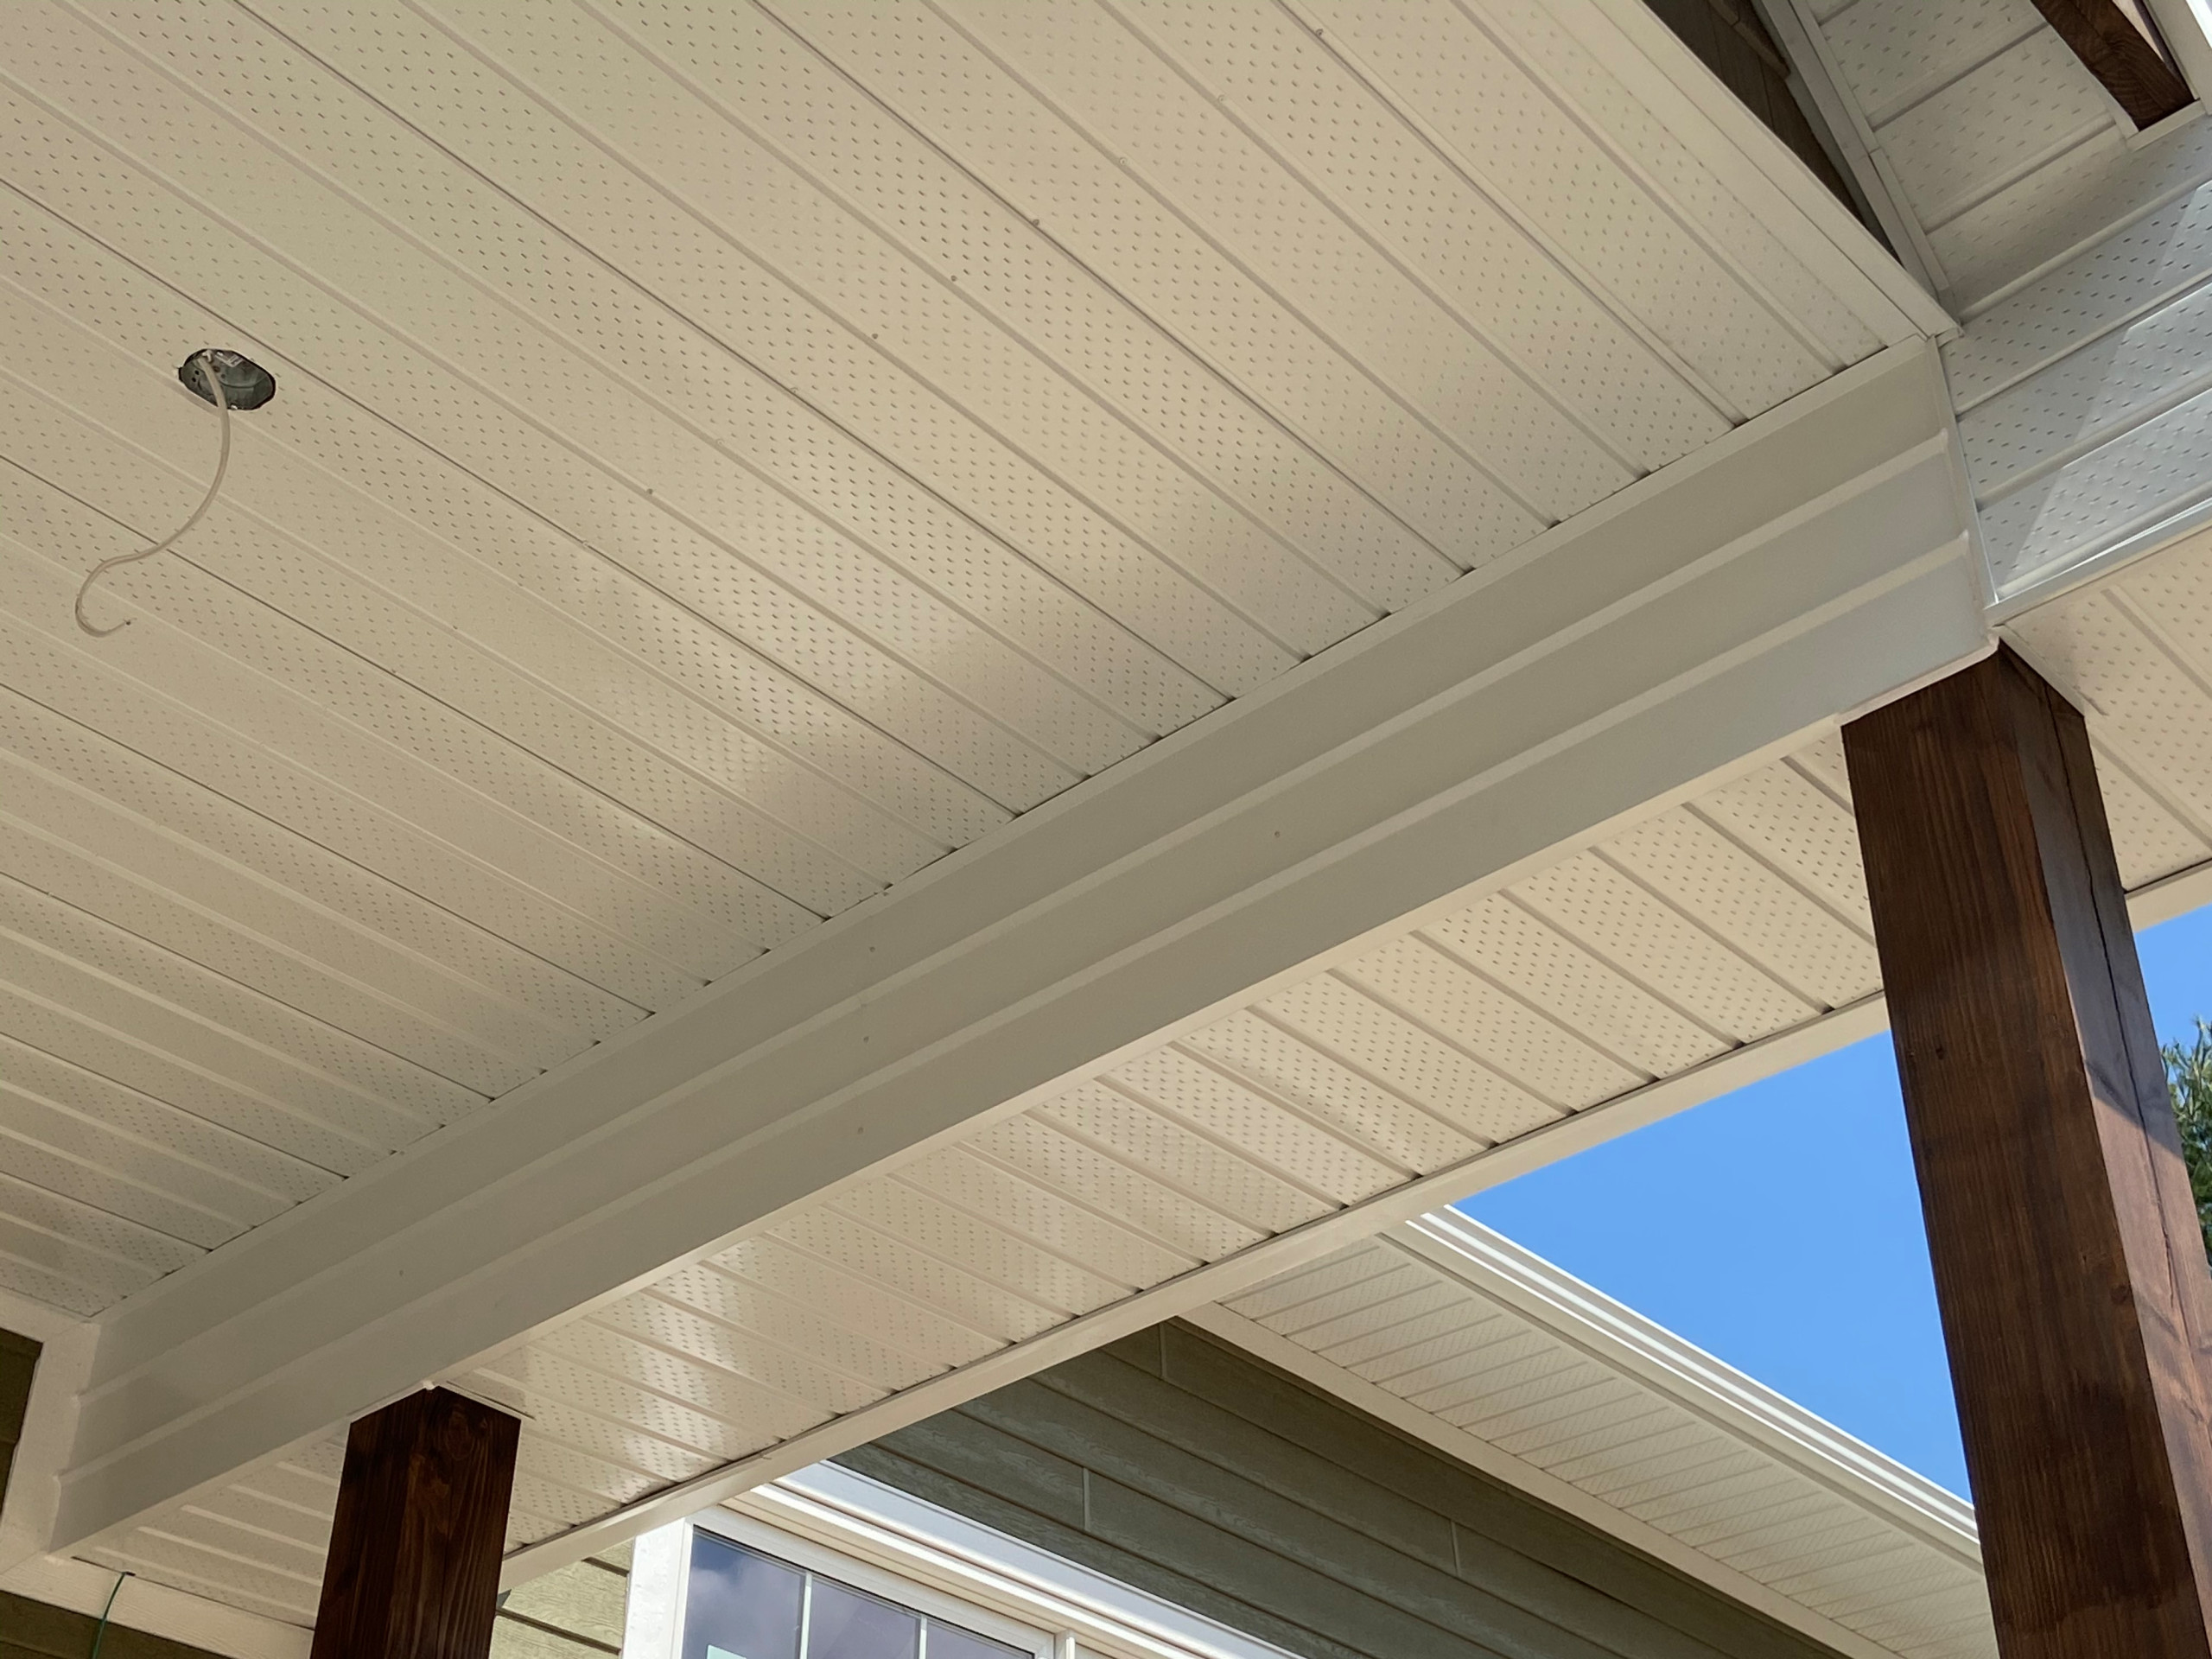 Siding, Soffit, Fascia and eavestrough